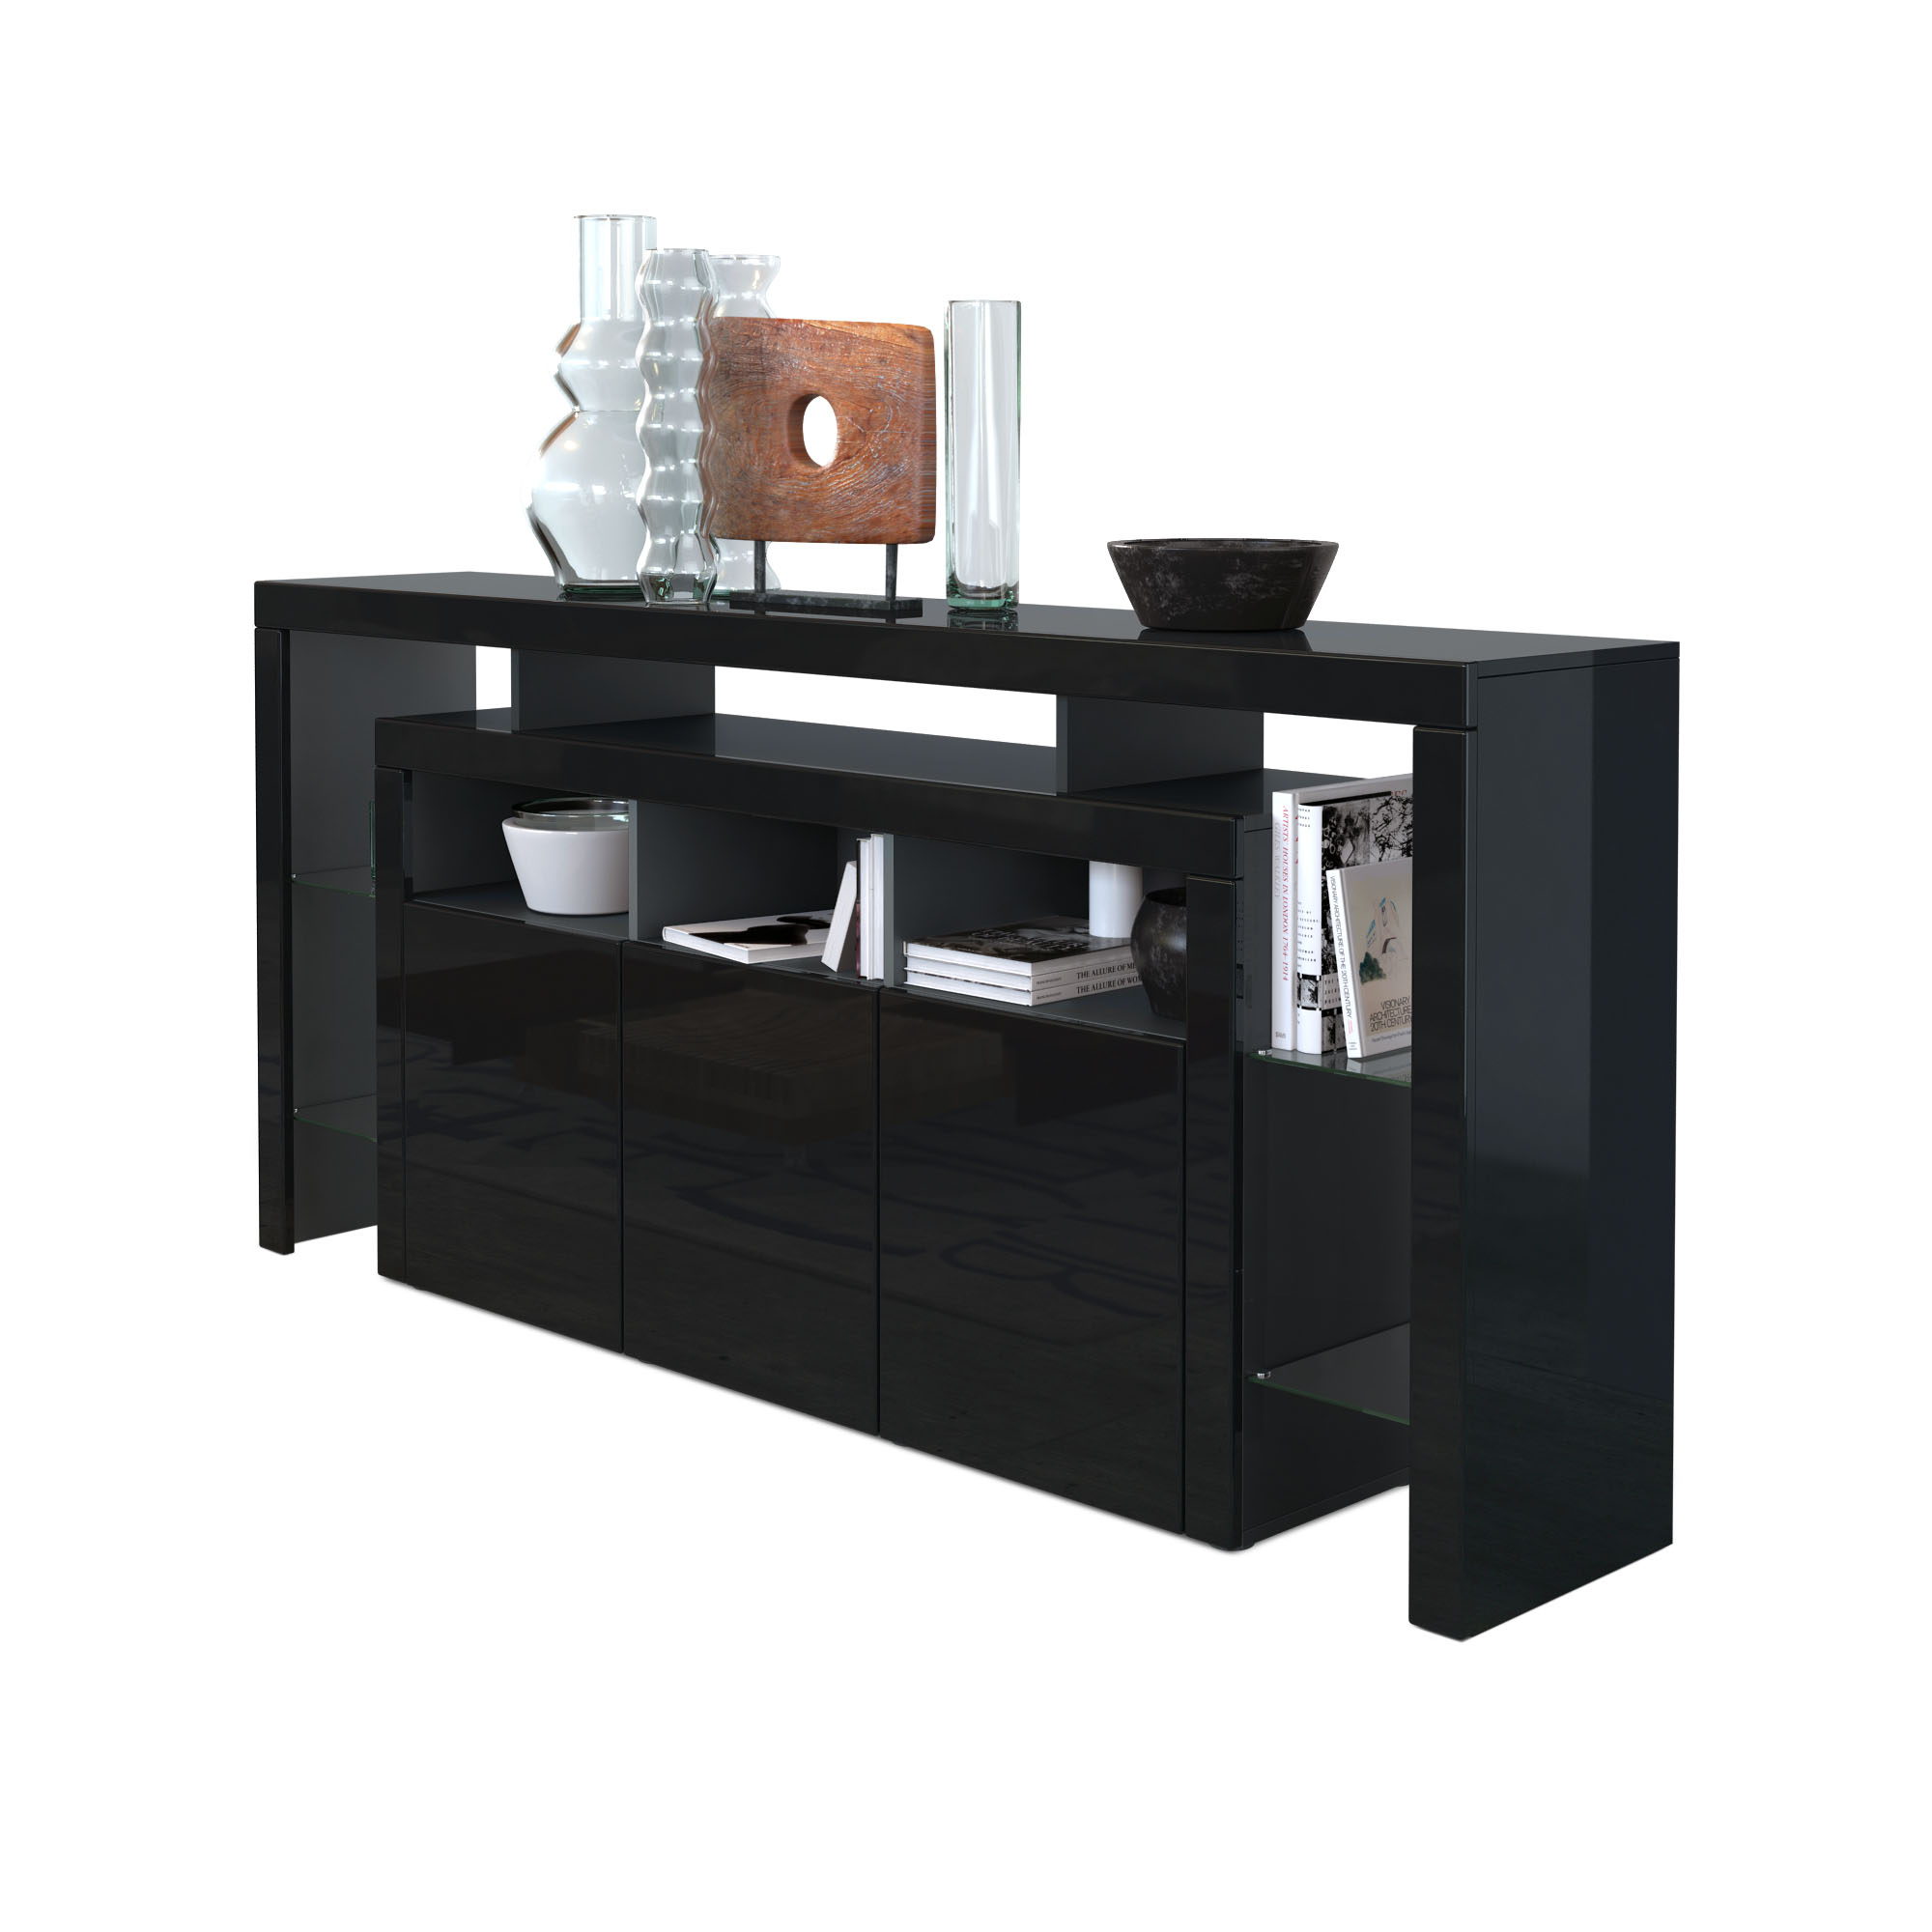 sideboard kommode anrichte highboard rosario 192 wei schwarz hochglanz beton ebay. Black Bedroom Furniture Sets. Home Design Ideas